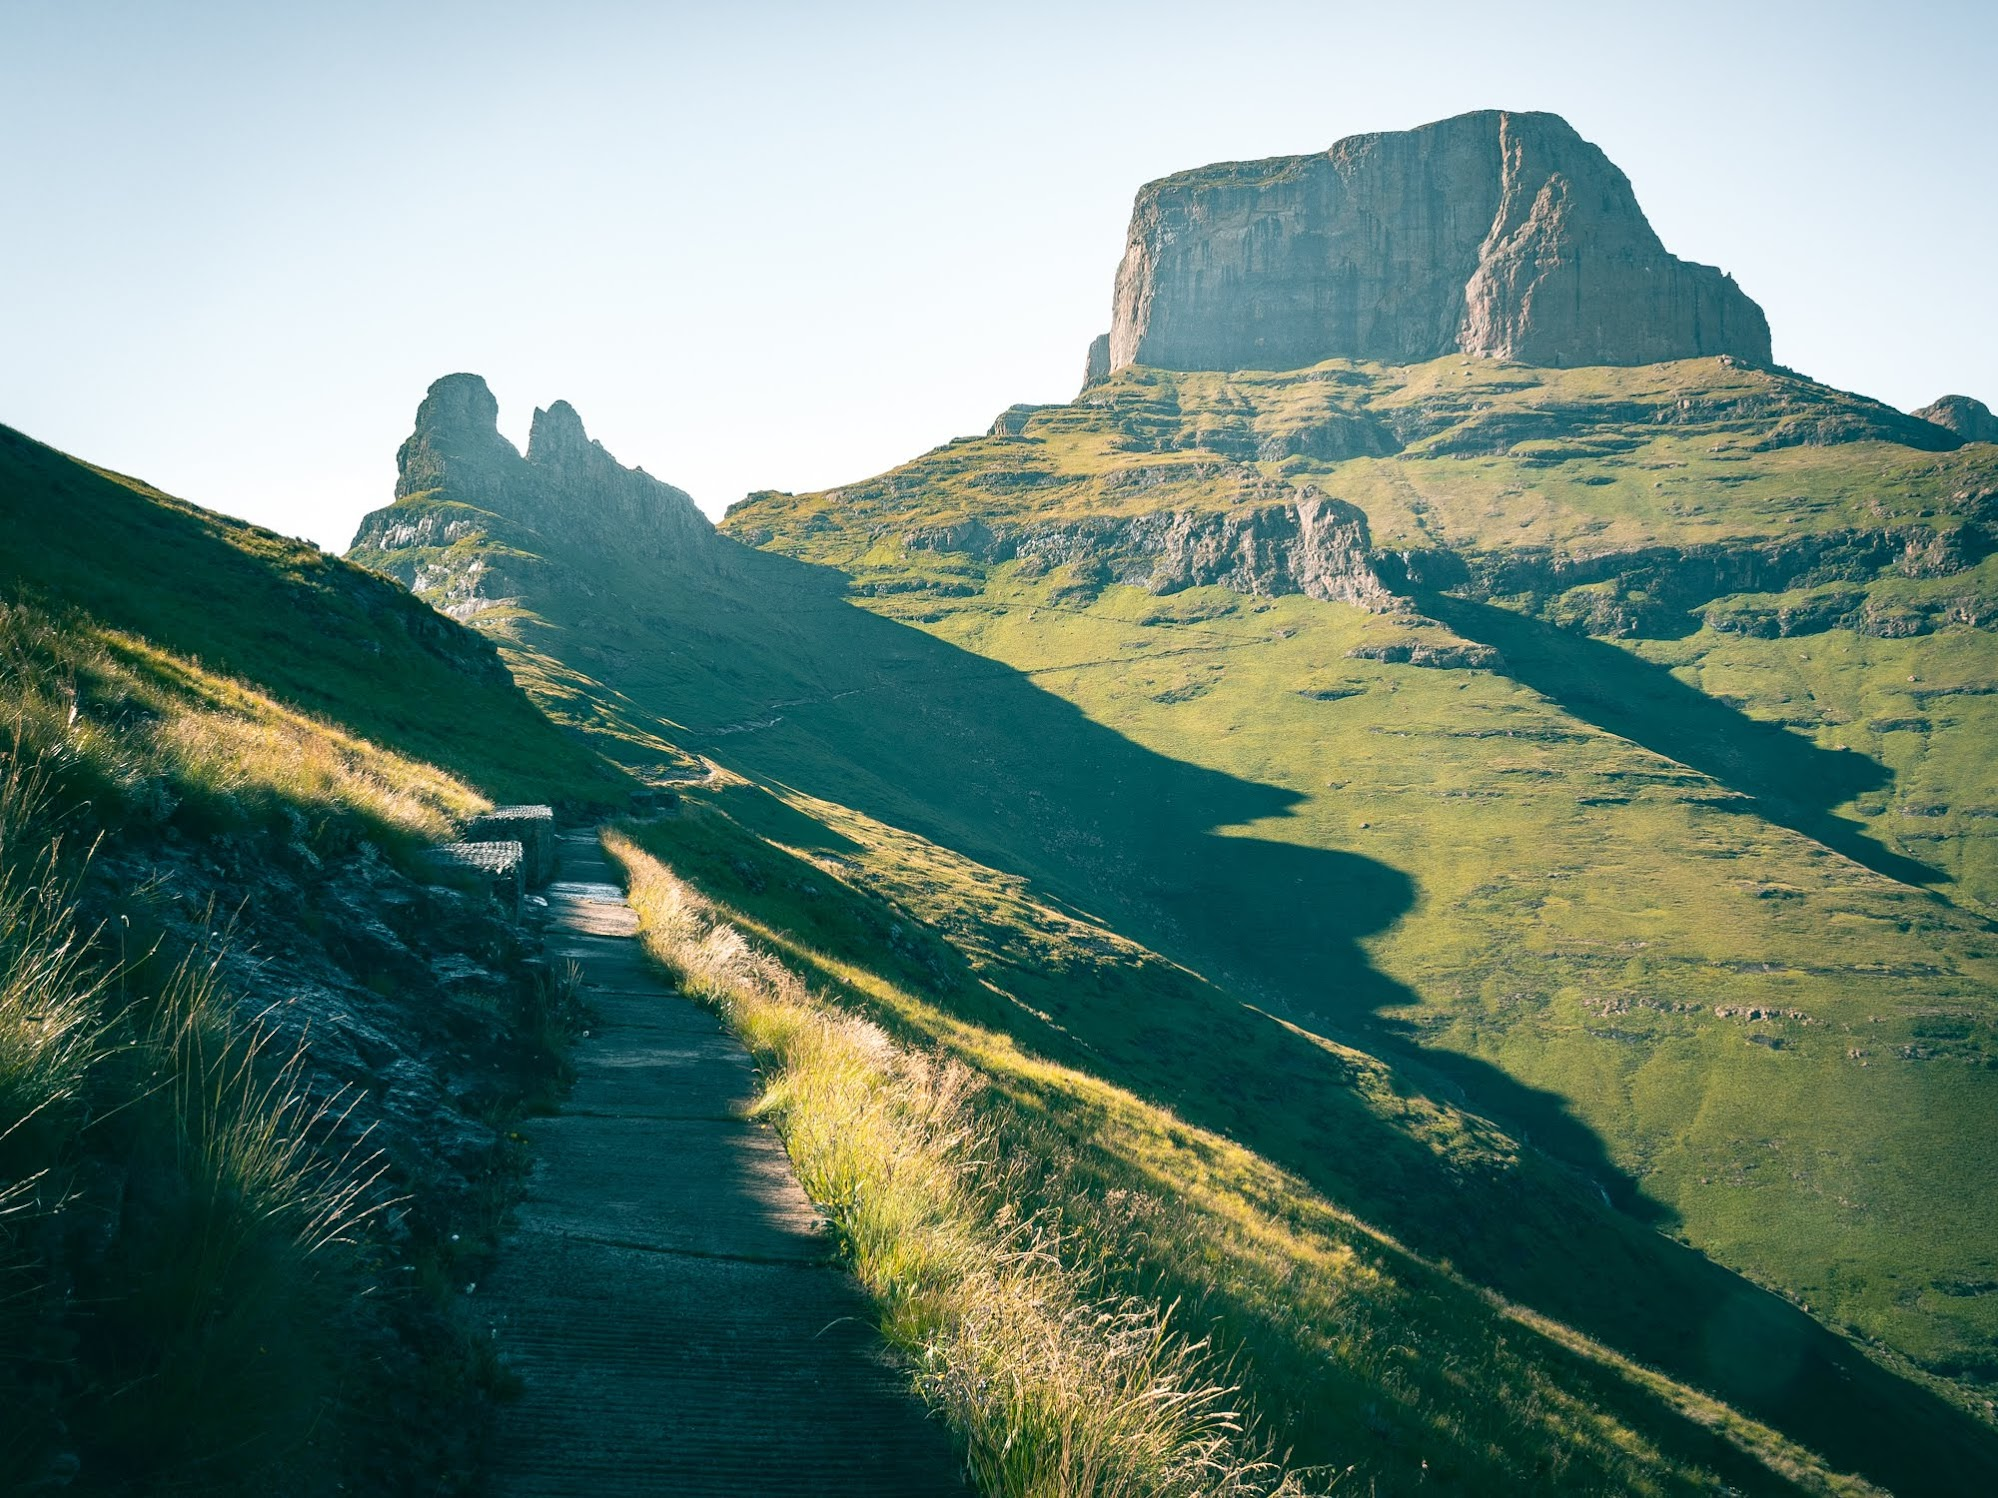 Morning shadows at the beginning of the Drakensberg hike.